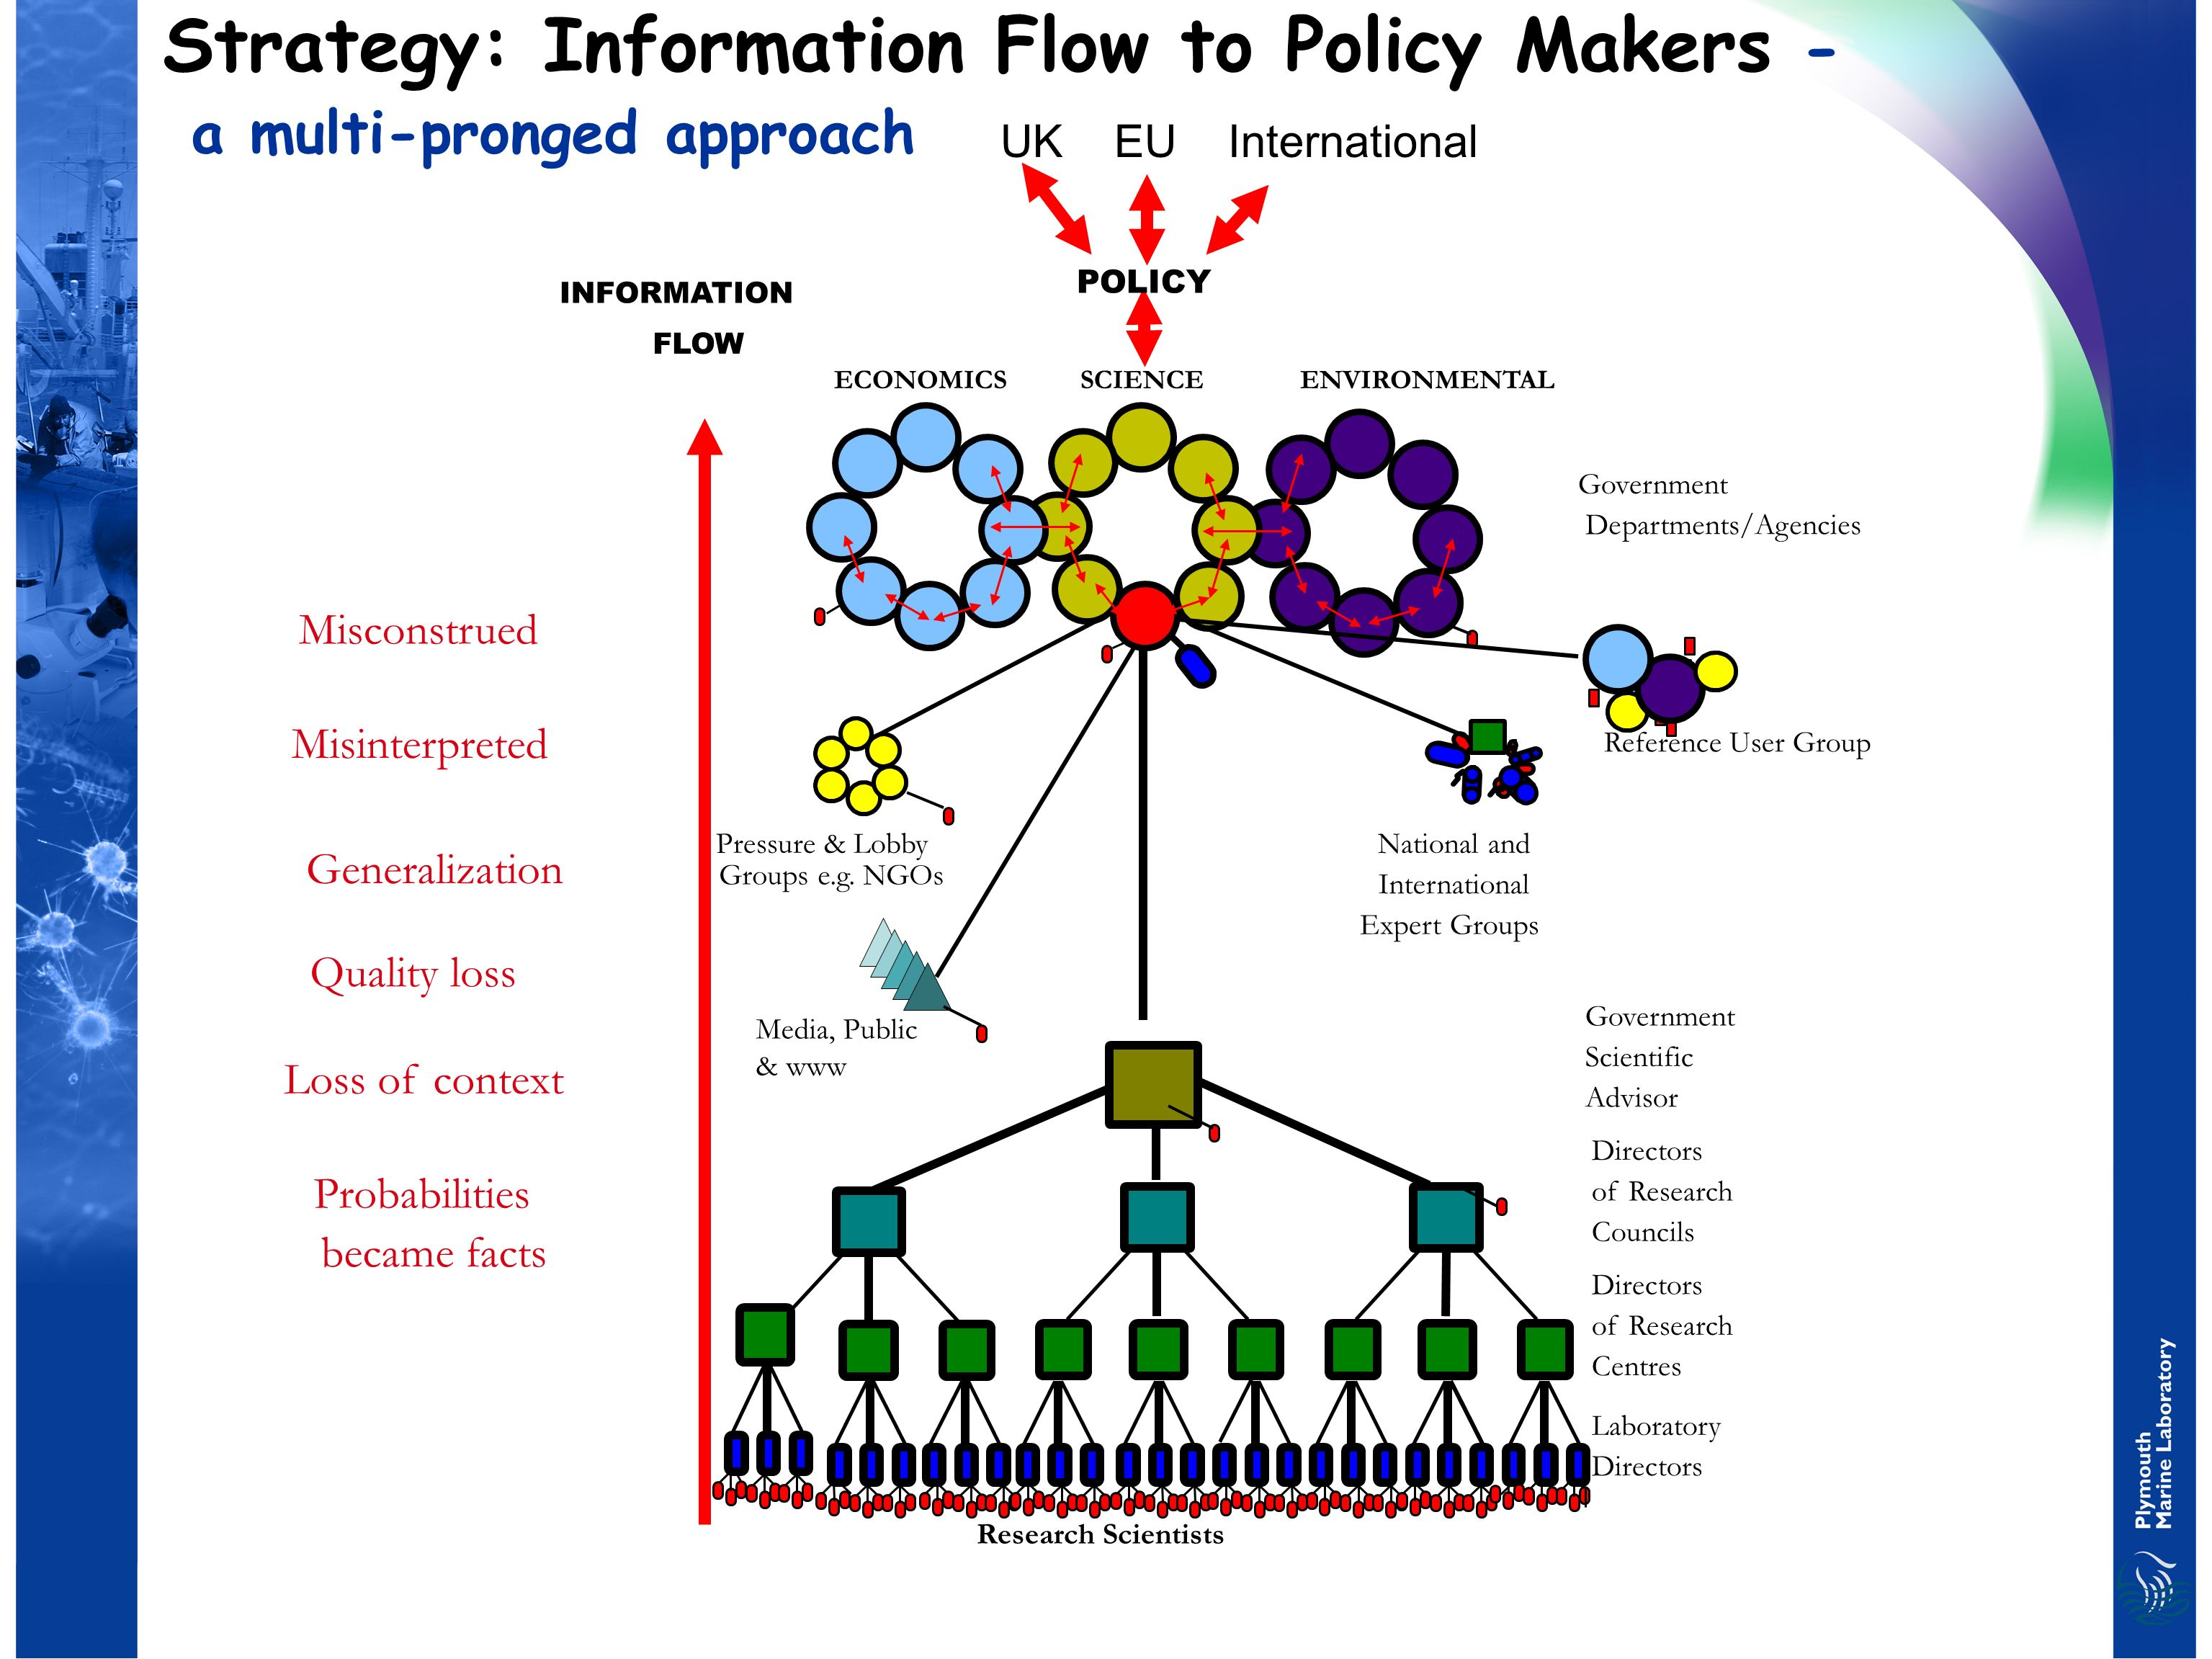 POLICY INFORMATION FLOW Research Scientists Laboratory Directors of Research Centres Directors of Research Councils Government Scientific Advisor Government Departments/Agencies SCIENCEENVIRONMENTALECONOMICS Pressure & Lobby Groups e.g.